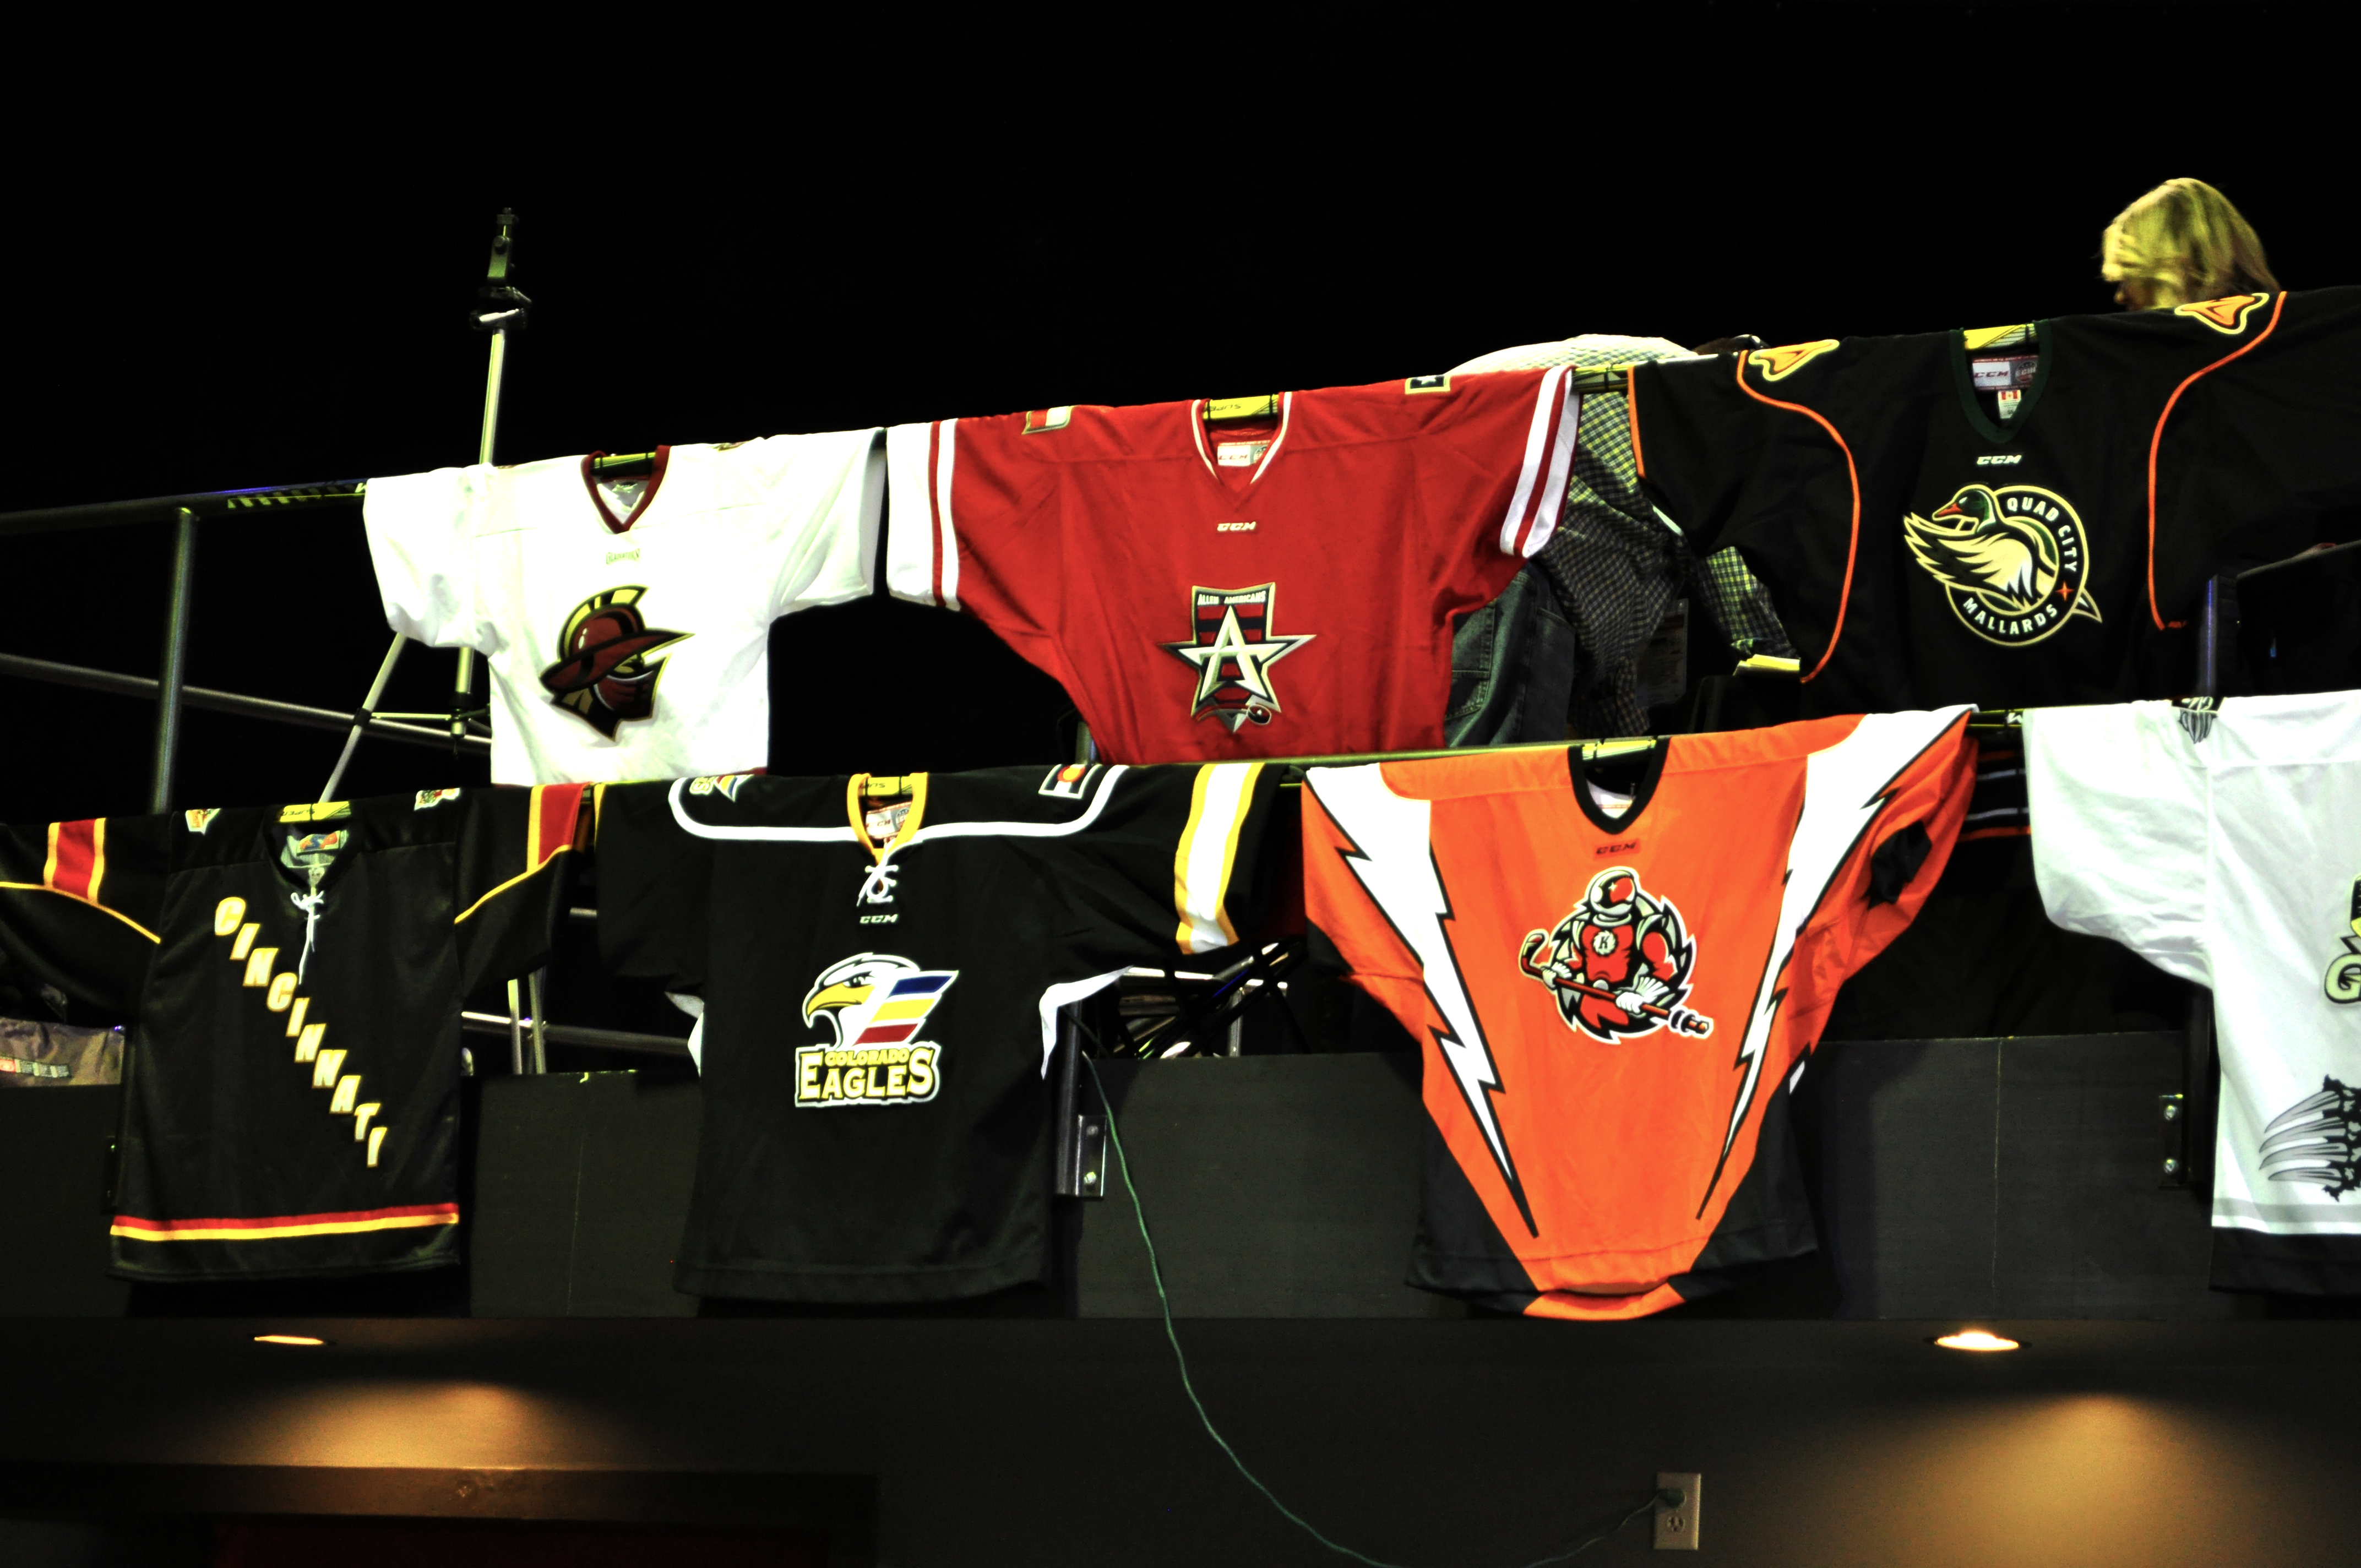 ECHL Mountain Division jerseys hanging on display at the 2018 ECHL All-Star Game Fan Fest in Indianapolis, Indiana.